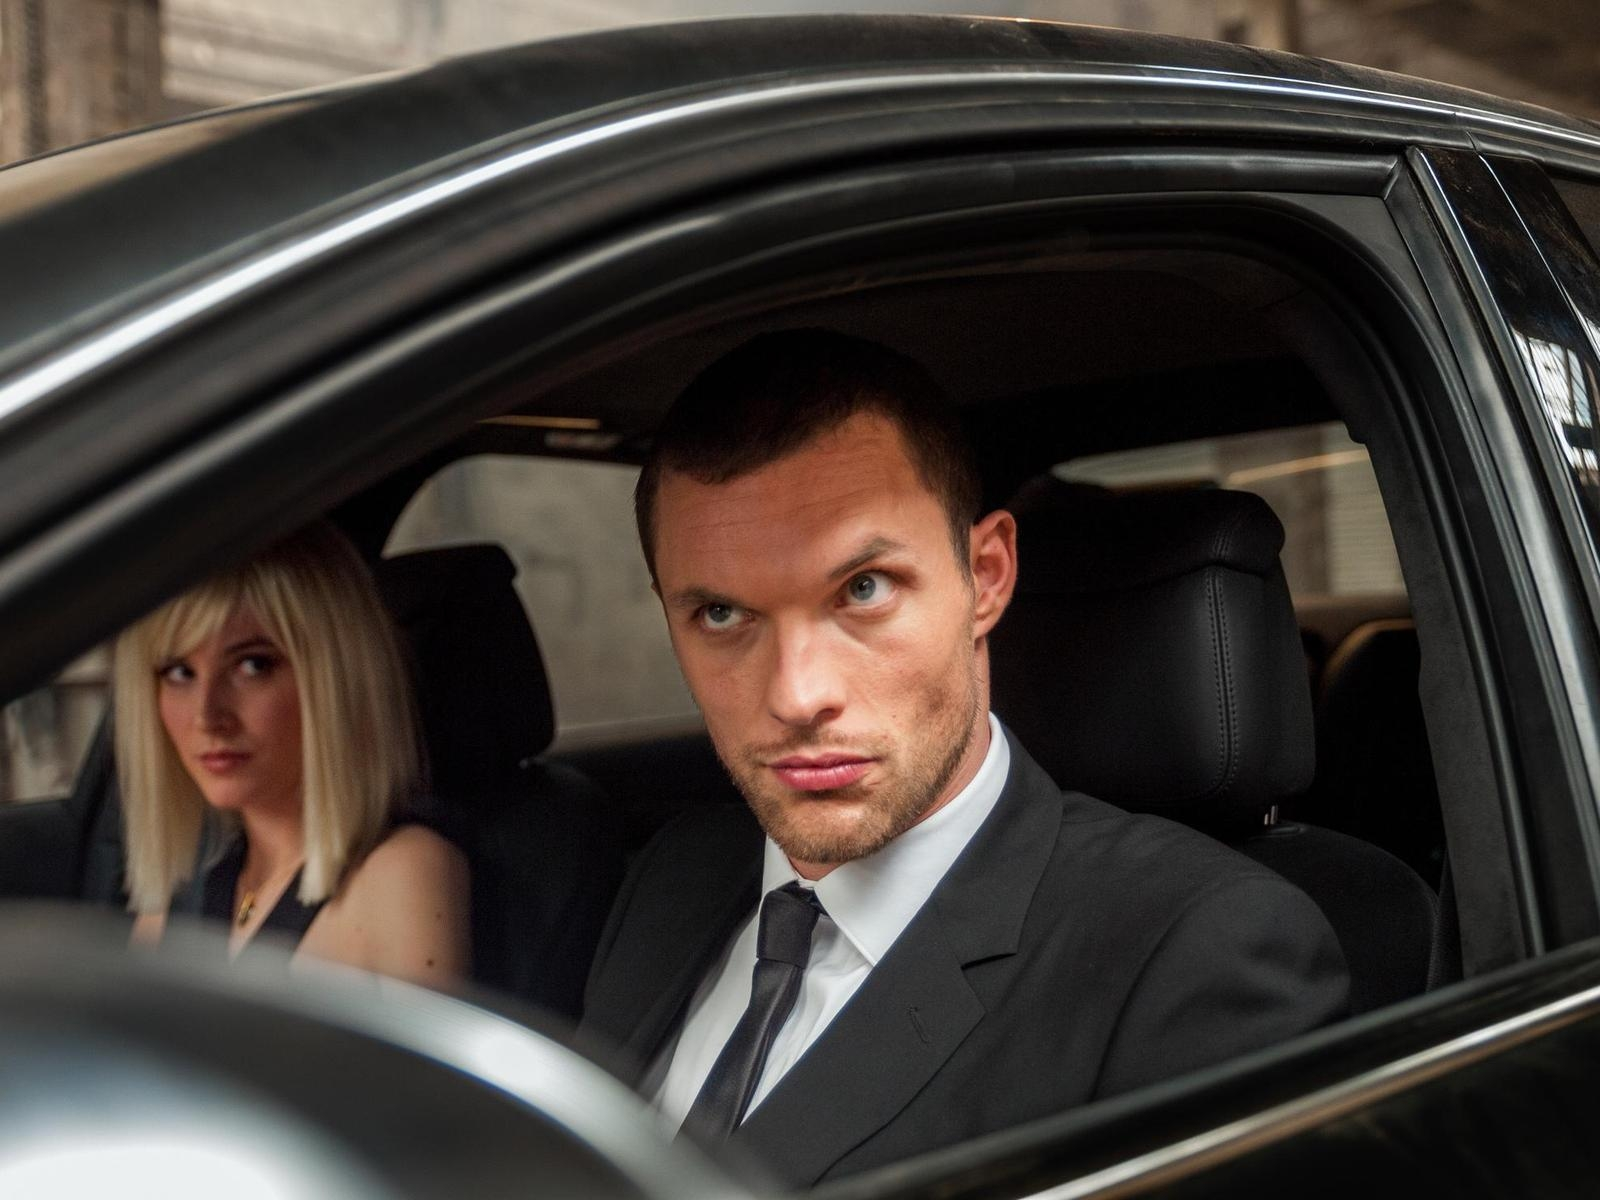 Transporter Refueled for 1600 x 1200 resolution